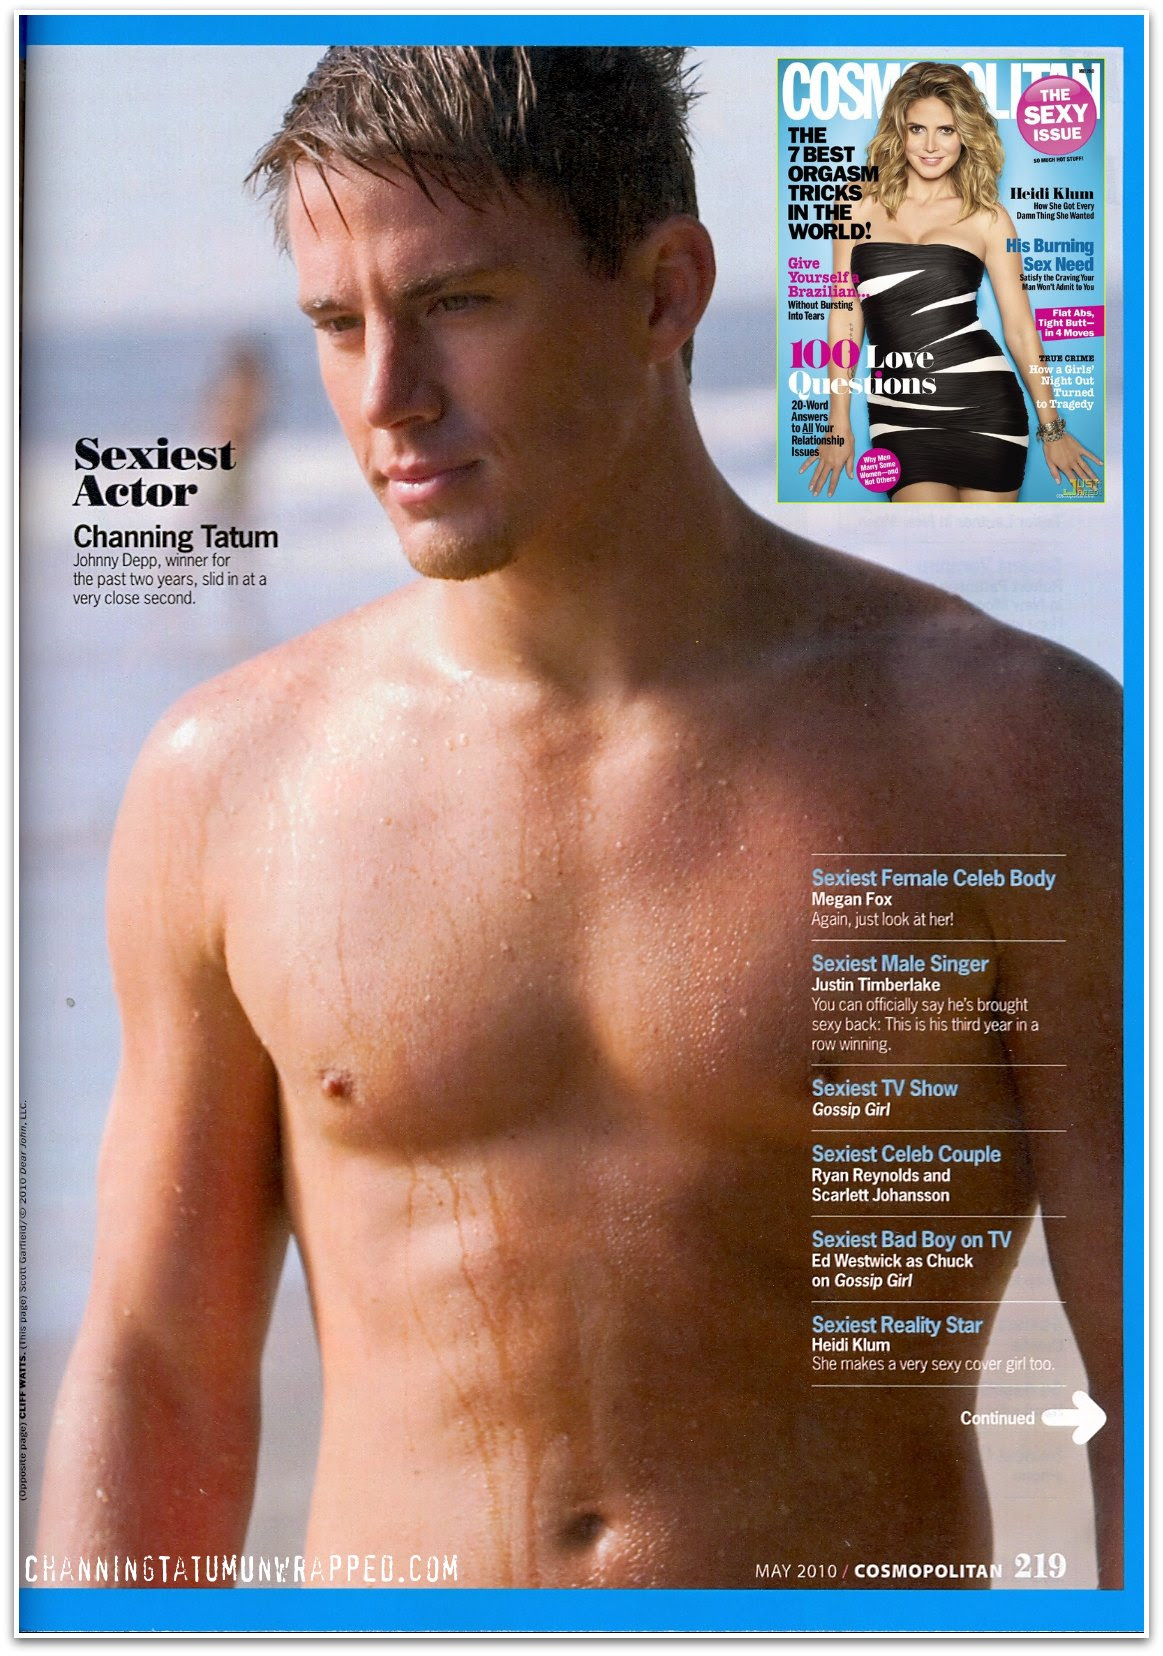 http://unwrappedphotos.com/wp-content/gallery/in-the-press/channing-tatum-sexiest-actor-cosmopolitan-may-2010.jpg